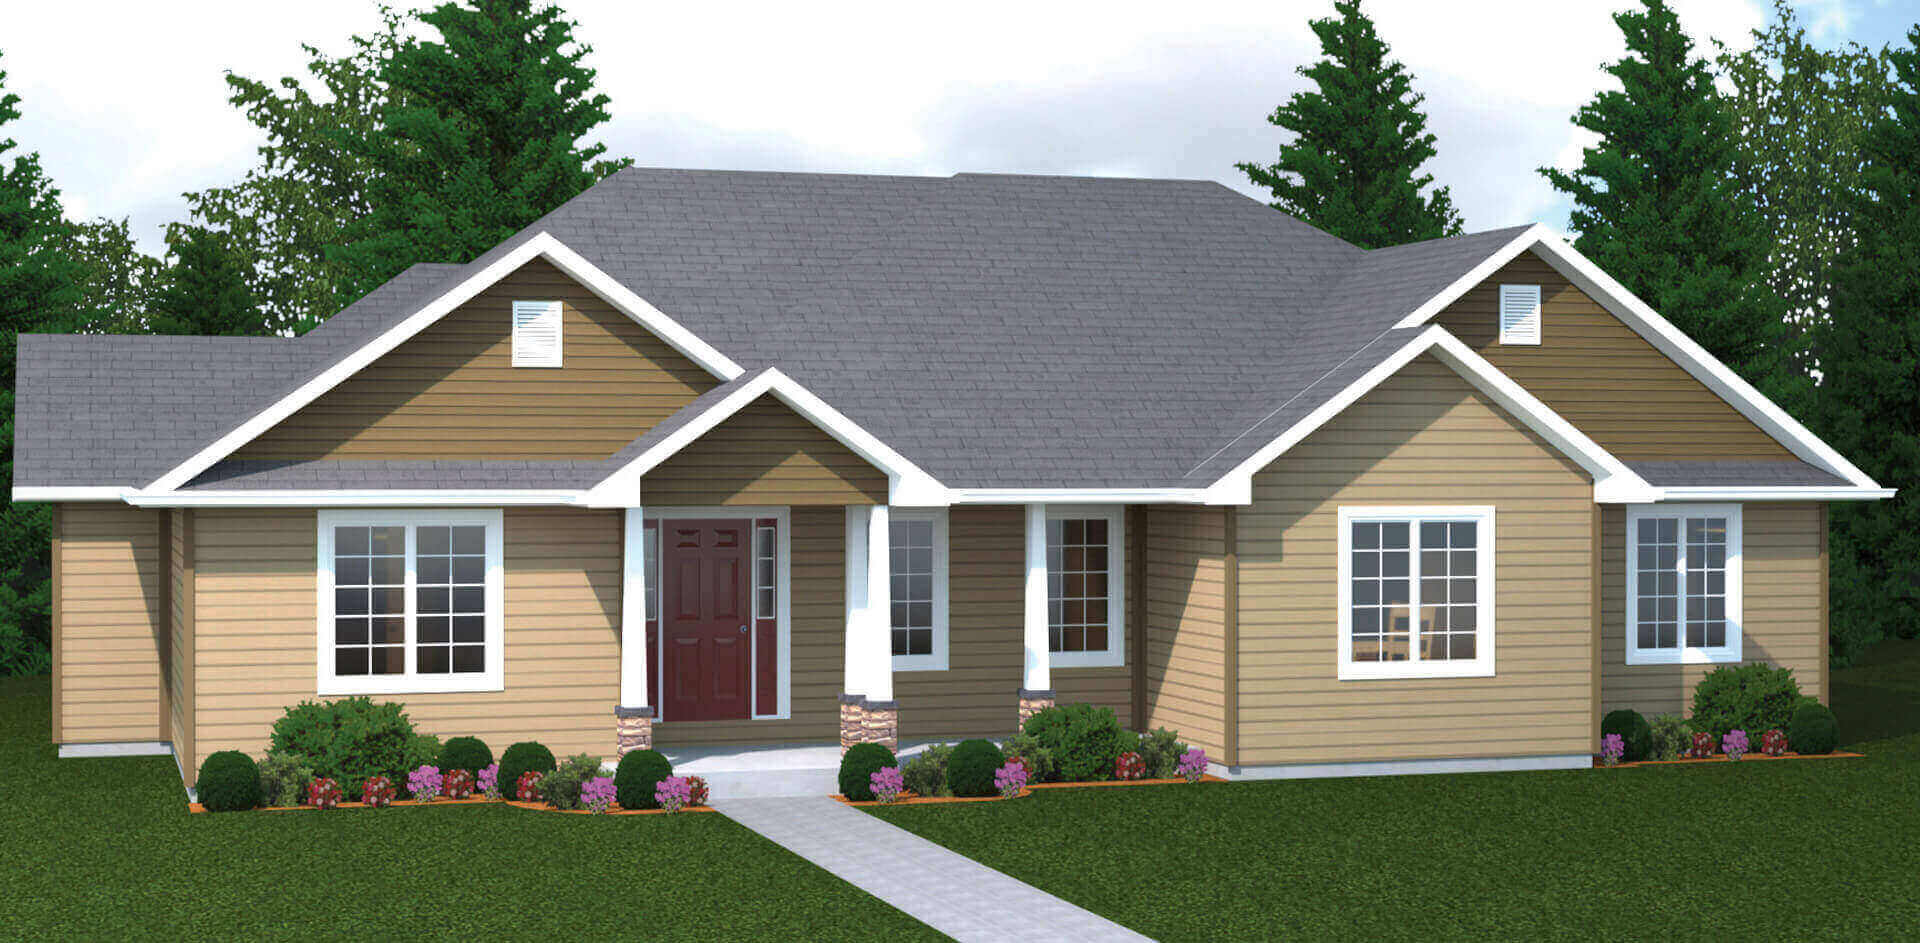 2436 plan elevation